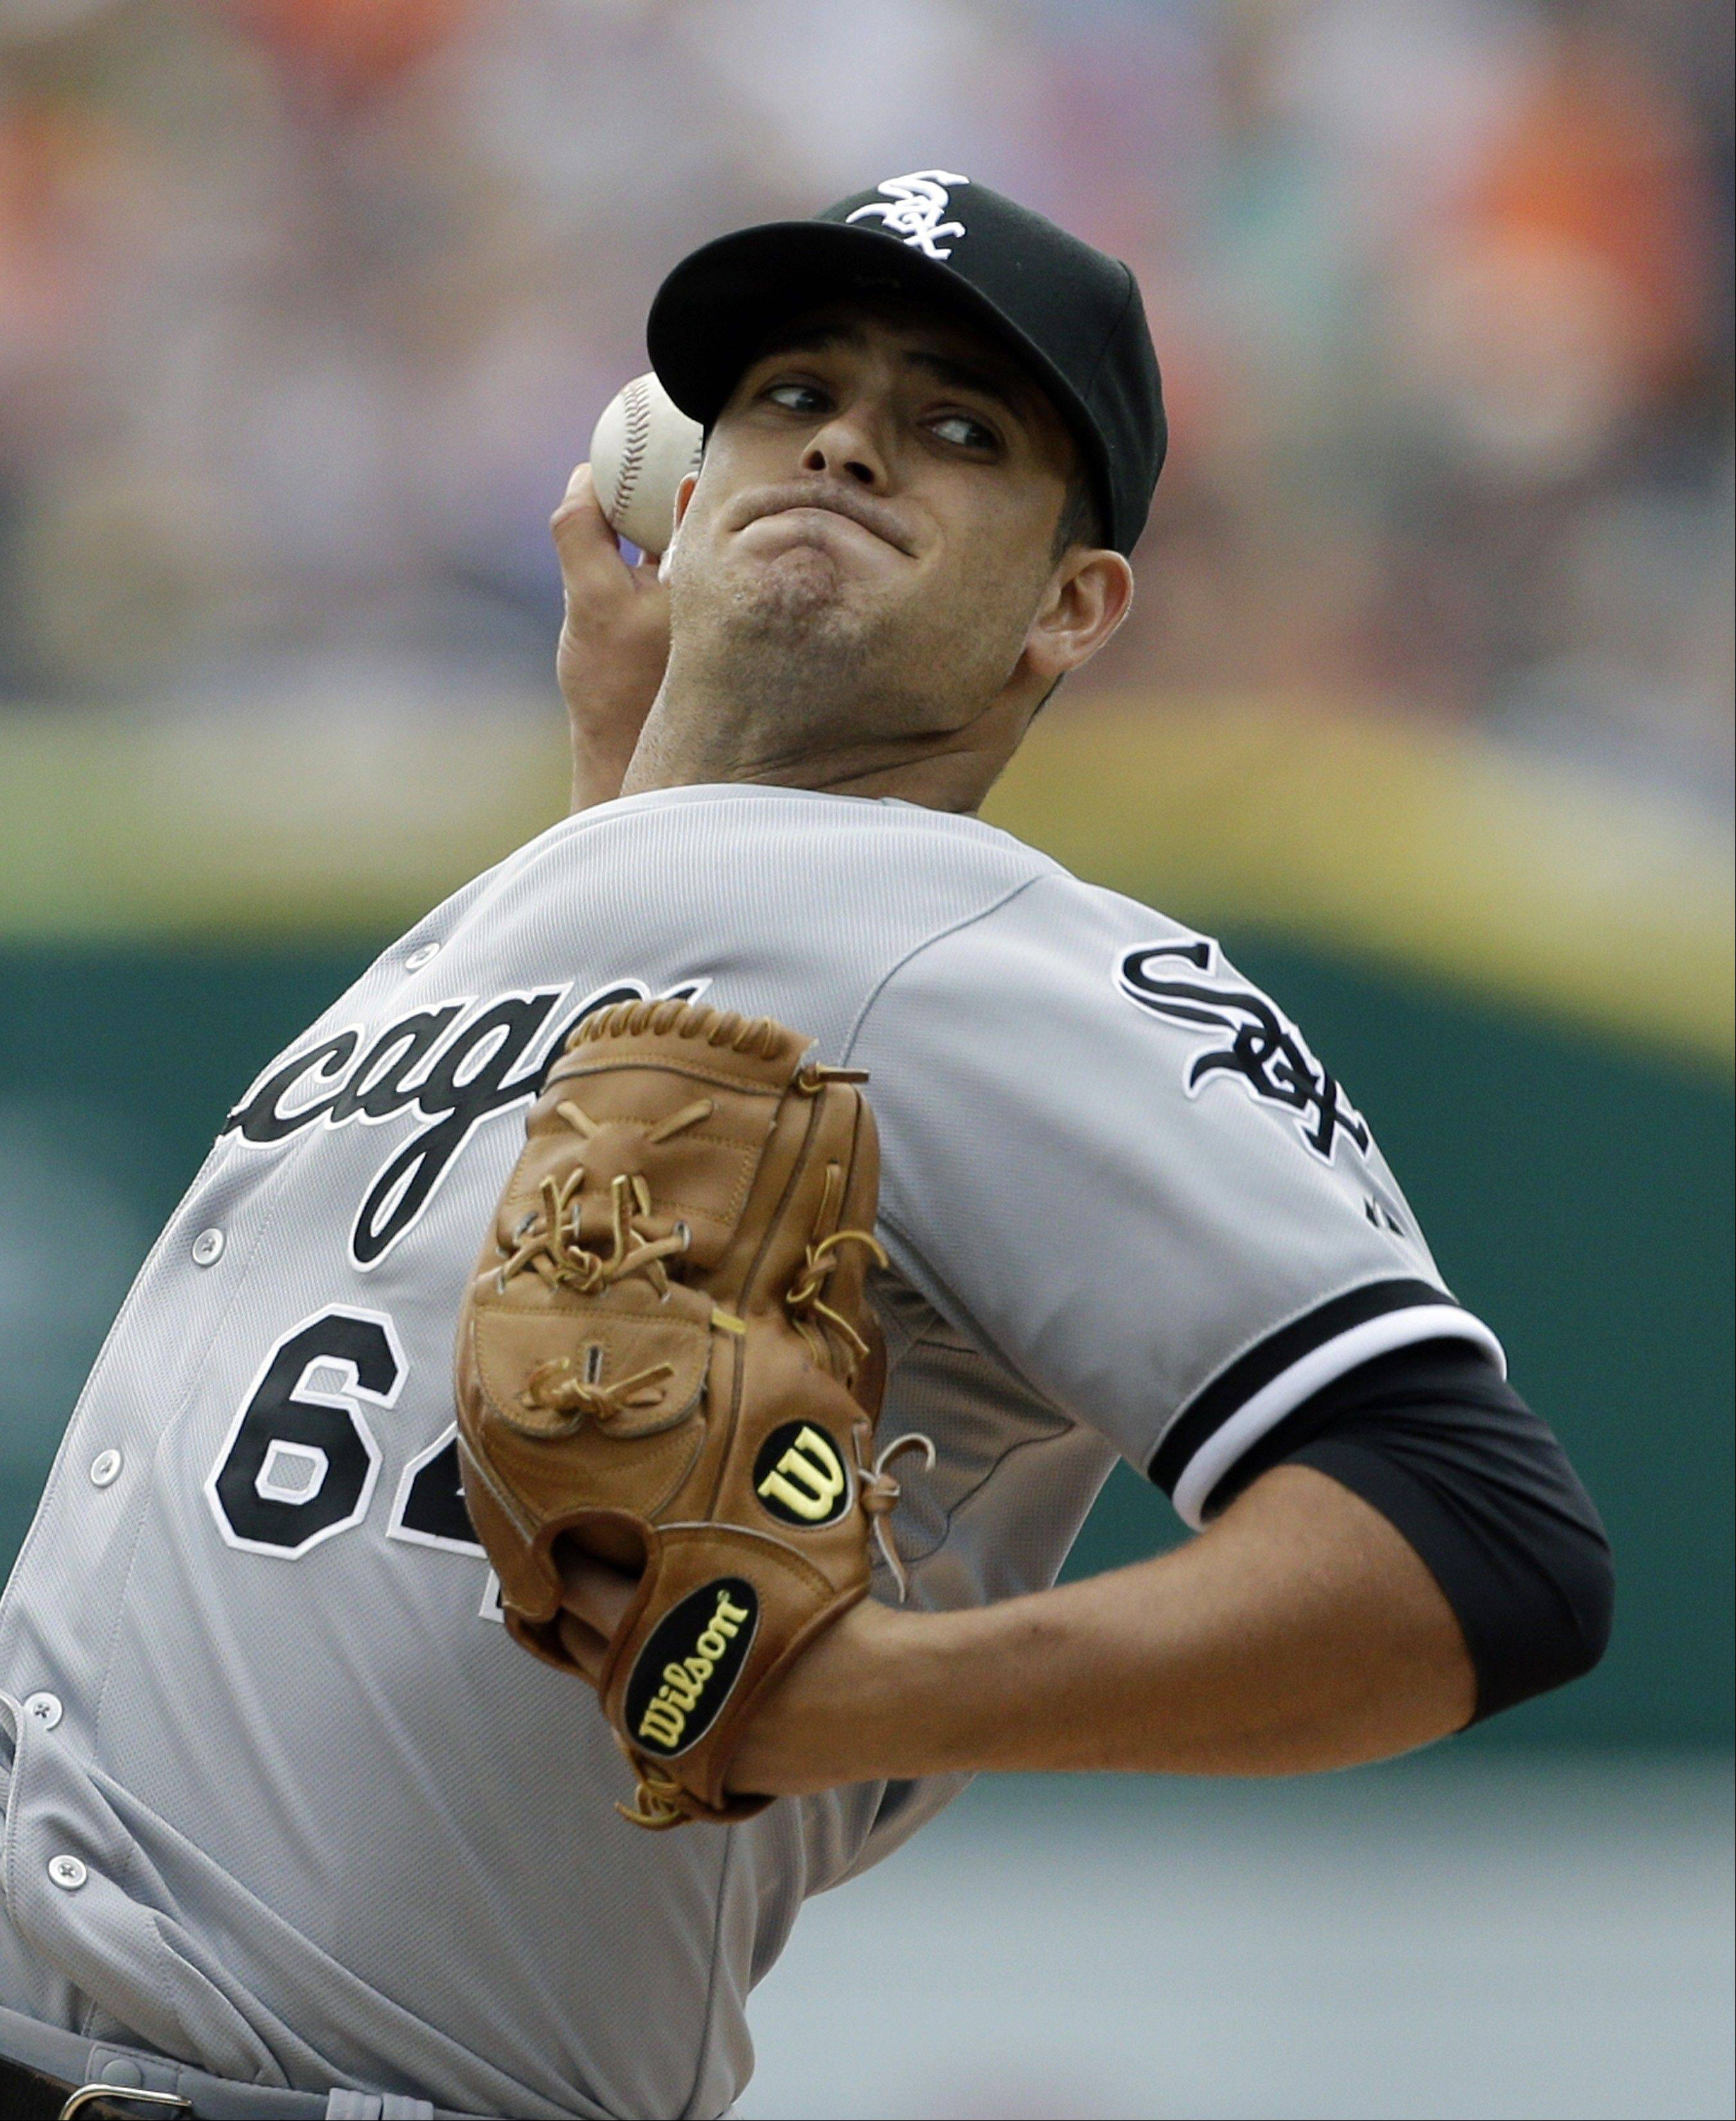 Rienzo looks like a keeper for White Sox